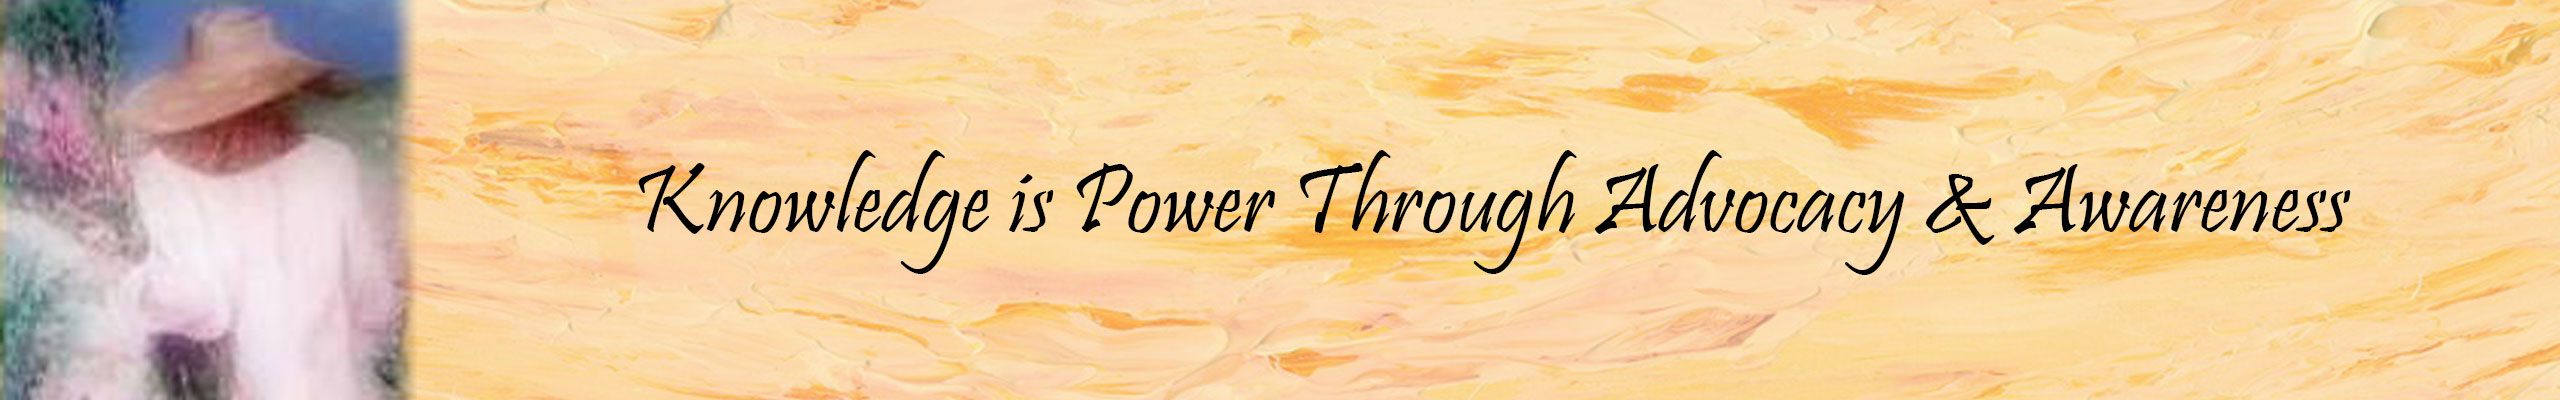 knowledge is power through advocacy and awareness banner